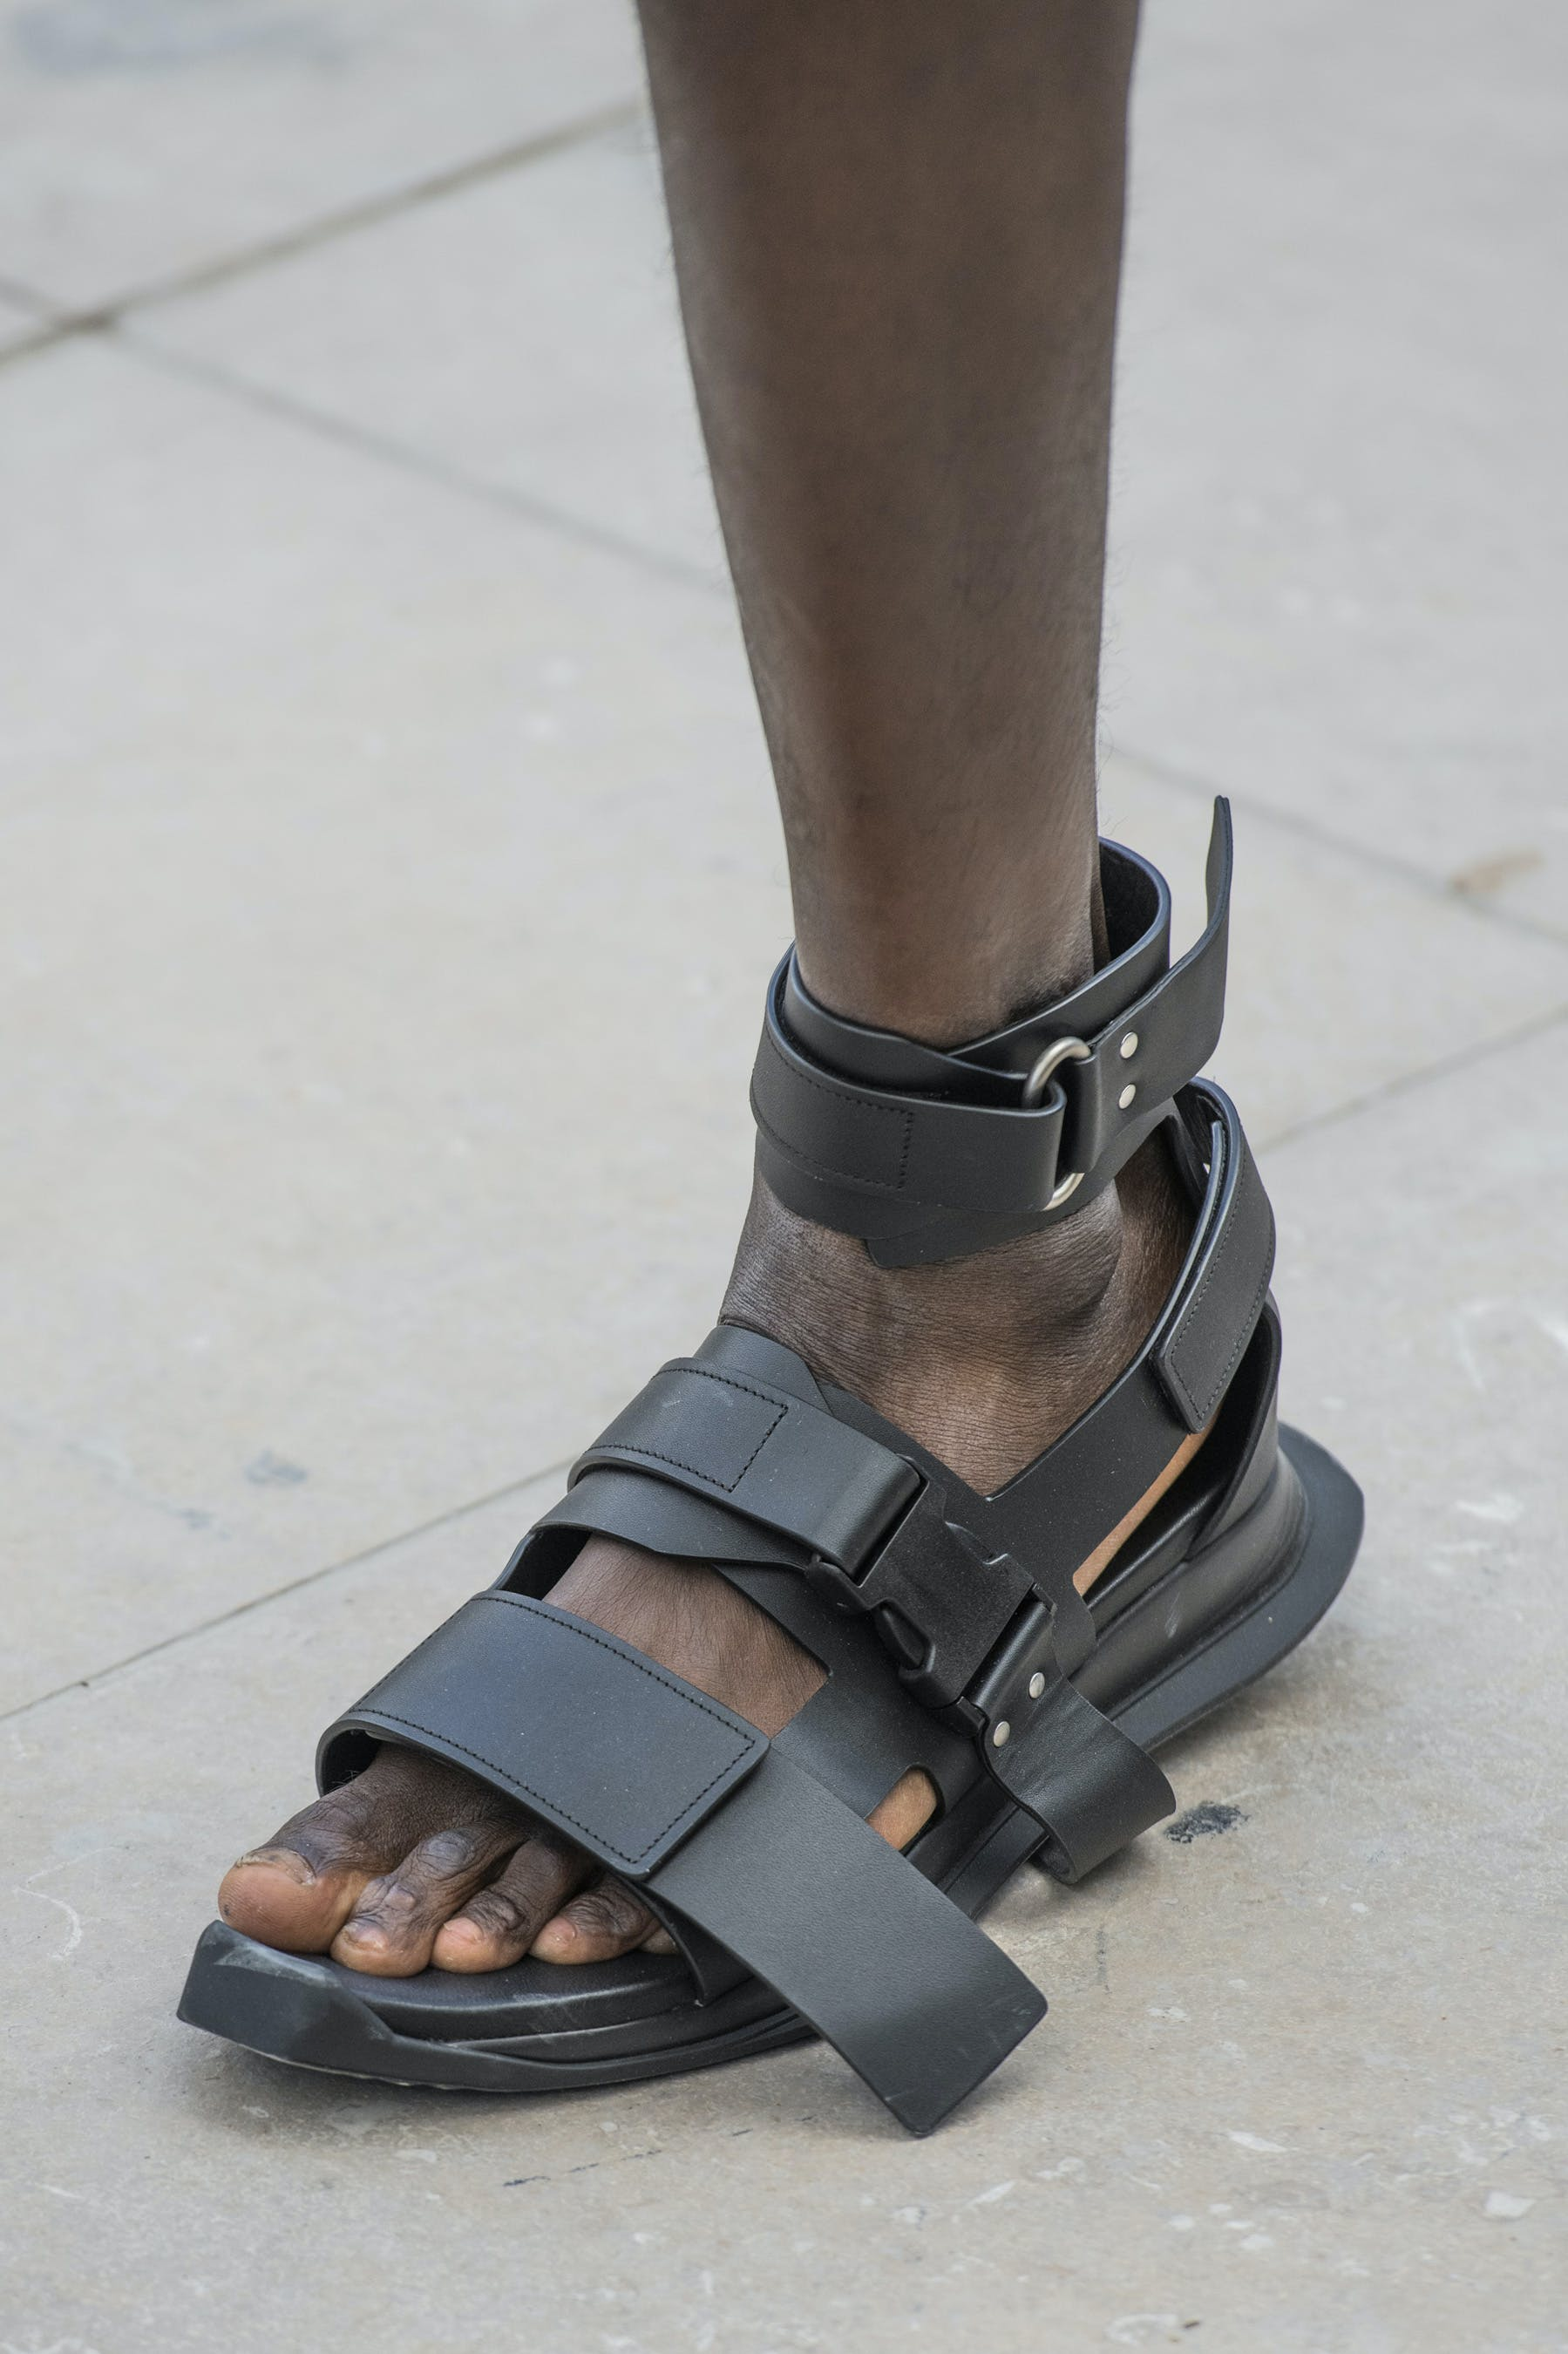 Rick Owens Runway Details Gladi Runner Sandals In Black Leather Front View Mens SS20 Tecautl